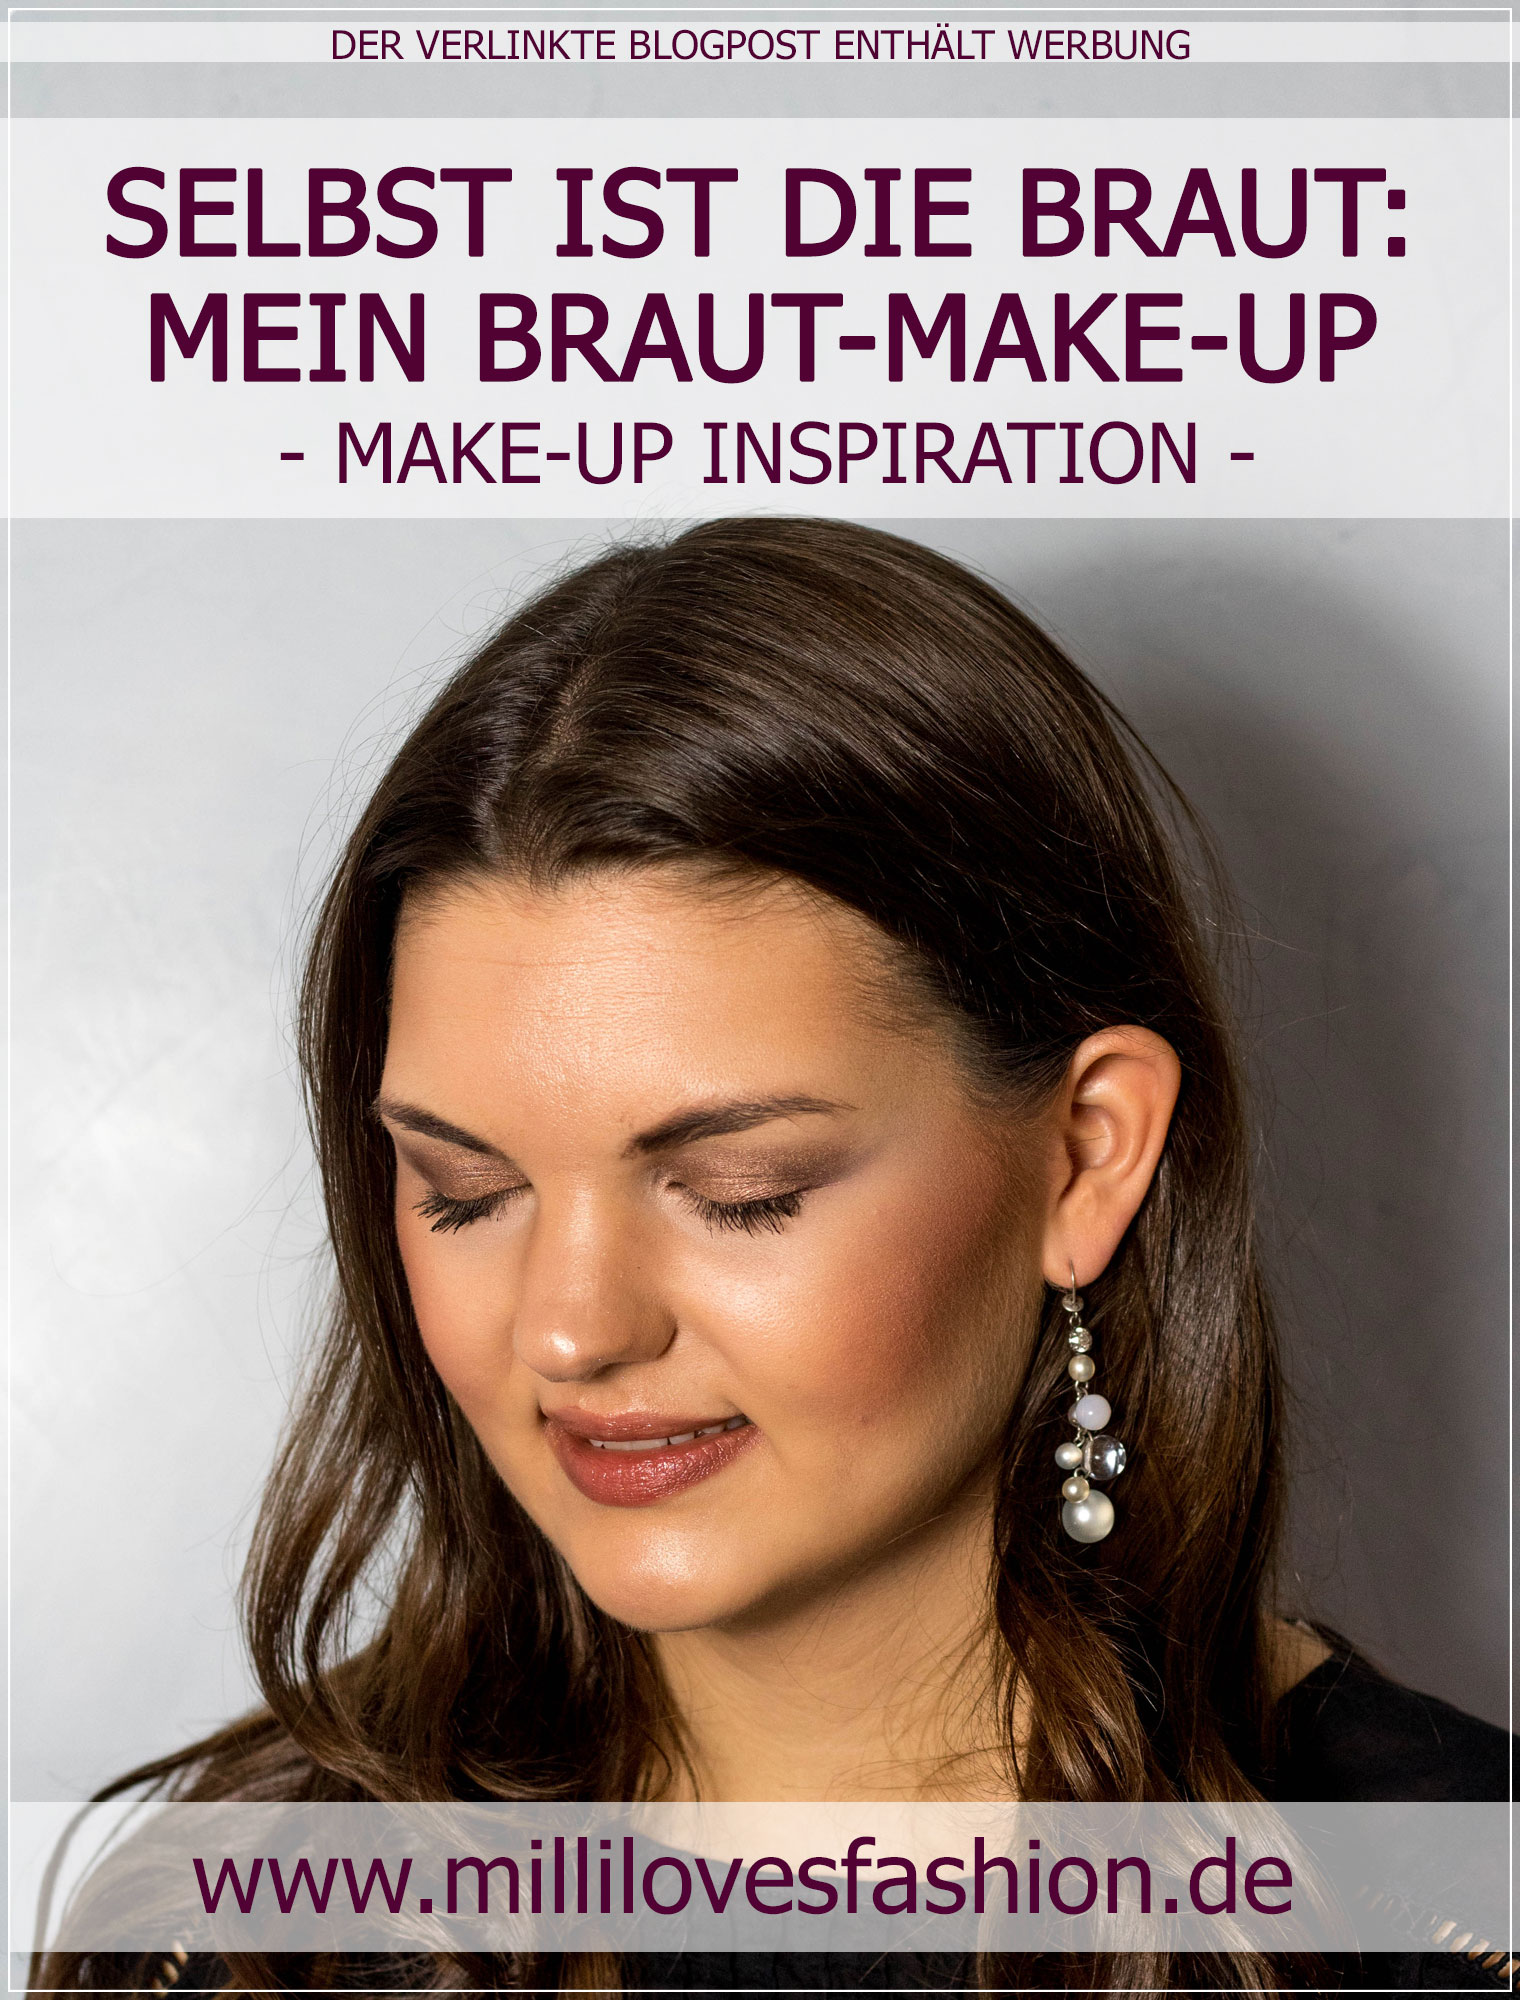 Braut-Make-Up, Hochzeits-Make-Up, Hochzeit, Wedding-Make-Up, Party-Make-Up, Glamour-Make-Up, Make-Up Tutorial, Beauty Blog, Beautybloggerin, Ruhrgebiet